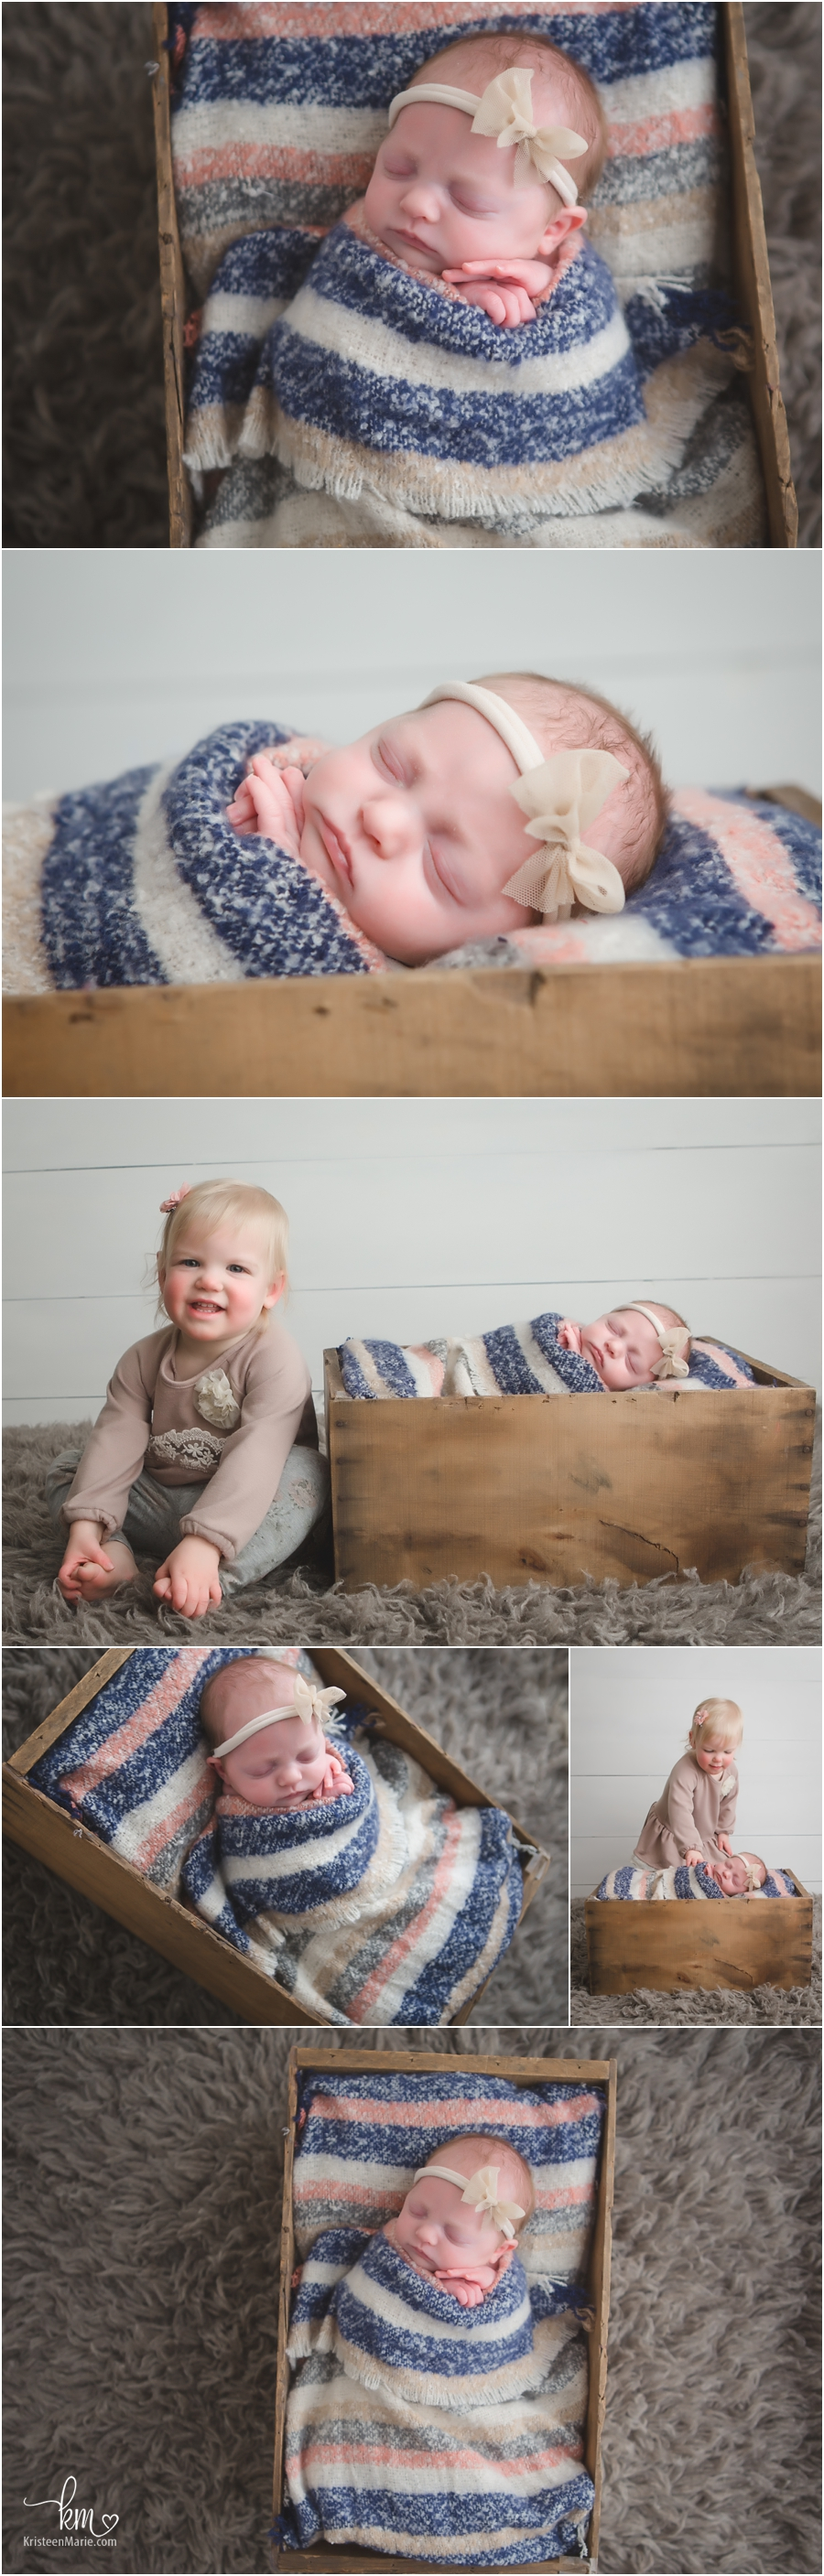 muted tones newborn photography - sibling pictures with newborn baby and 2 year old